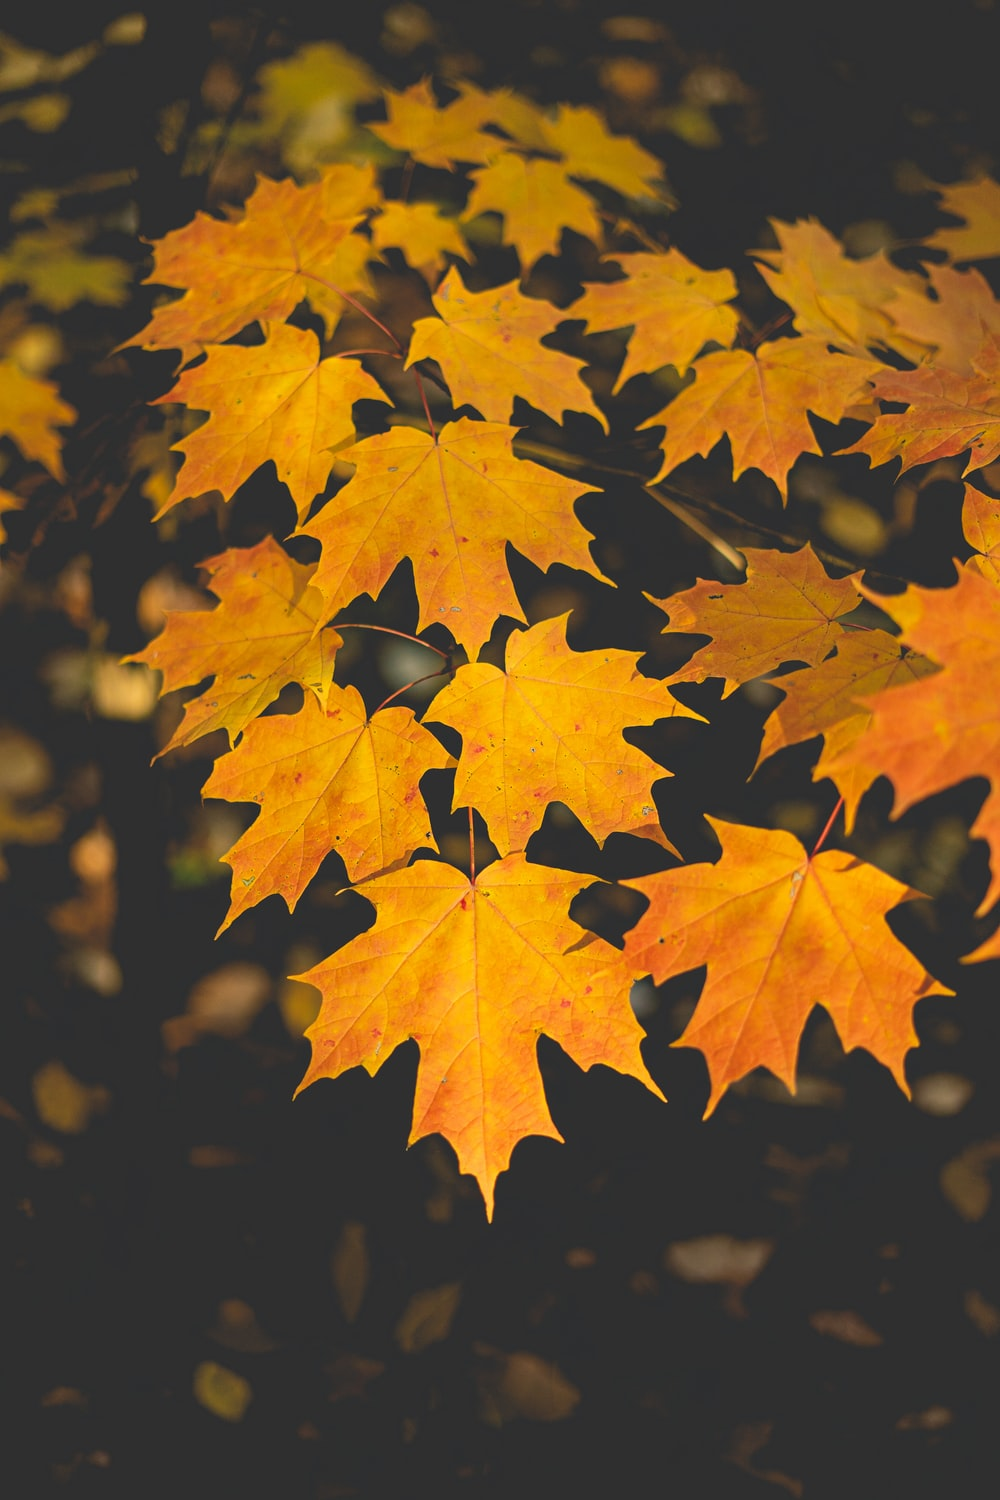 yellow maple leaves in close up photography